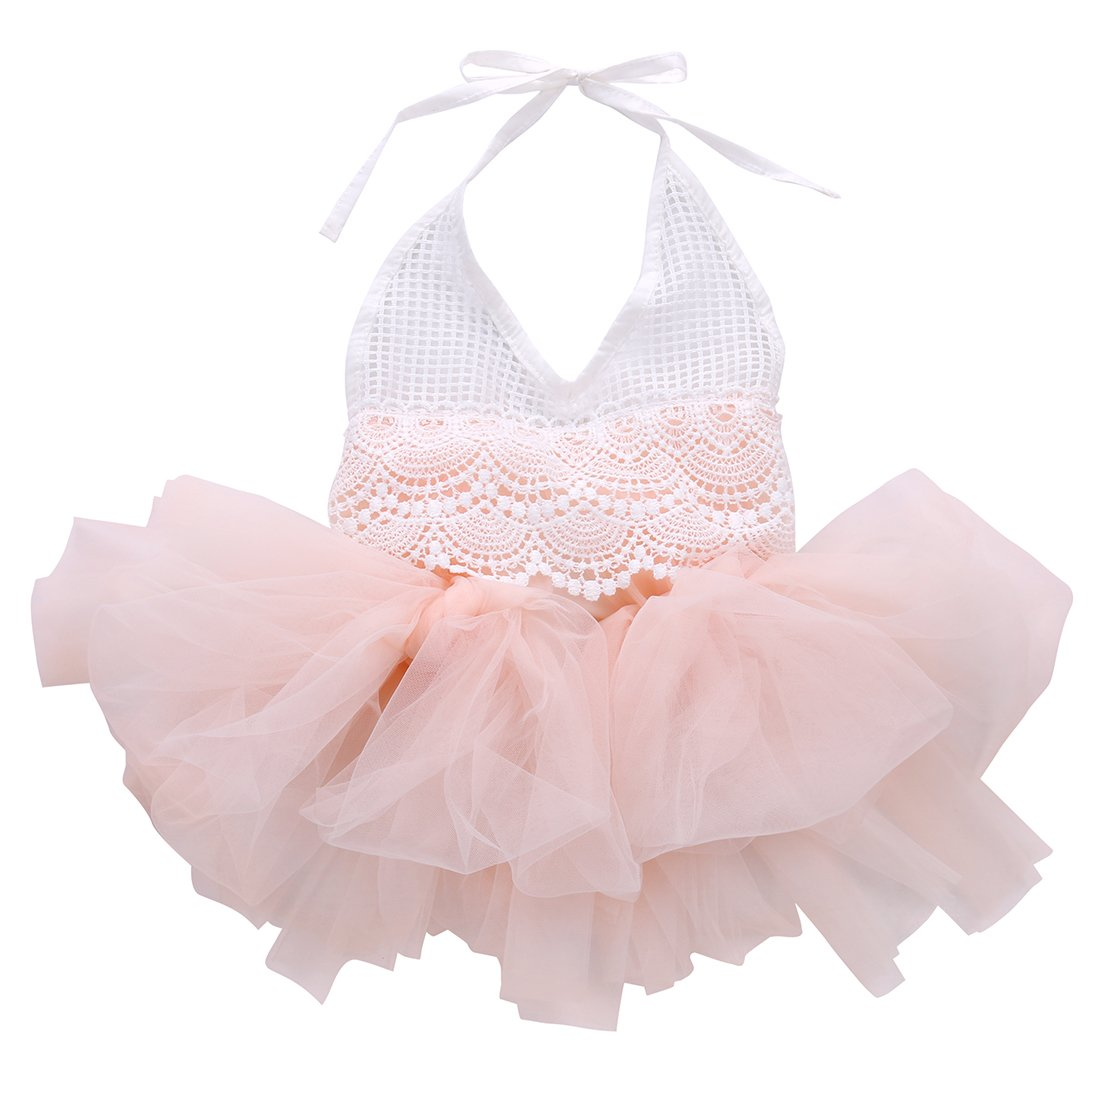 Flower Tiger Lace Tutu Dresses Backless Romper Sundress for Baby Girls